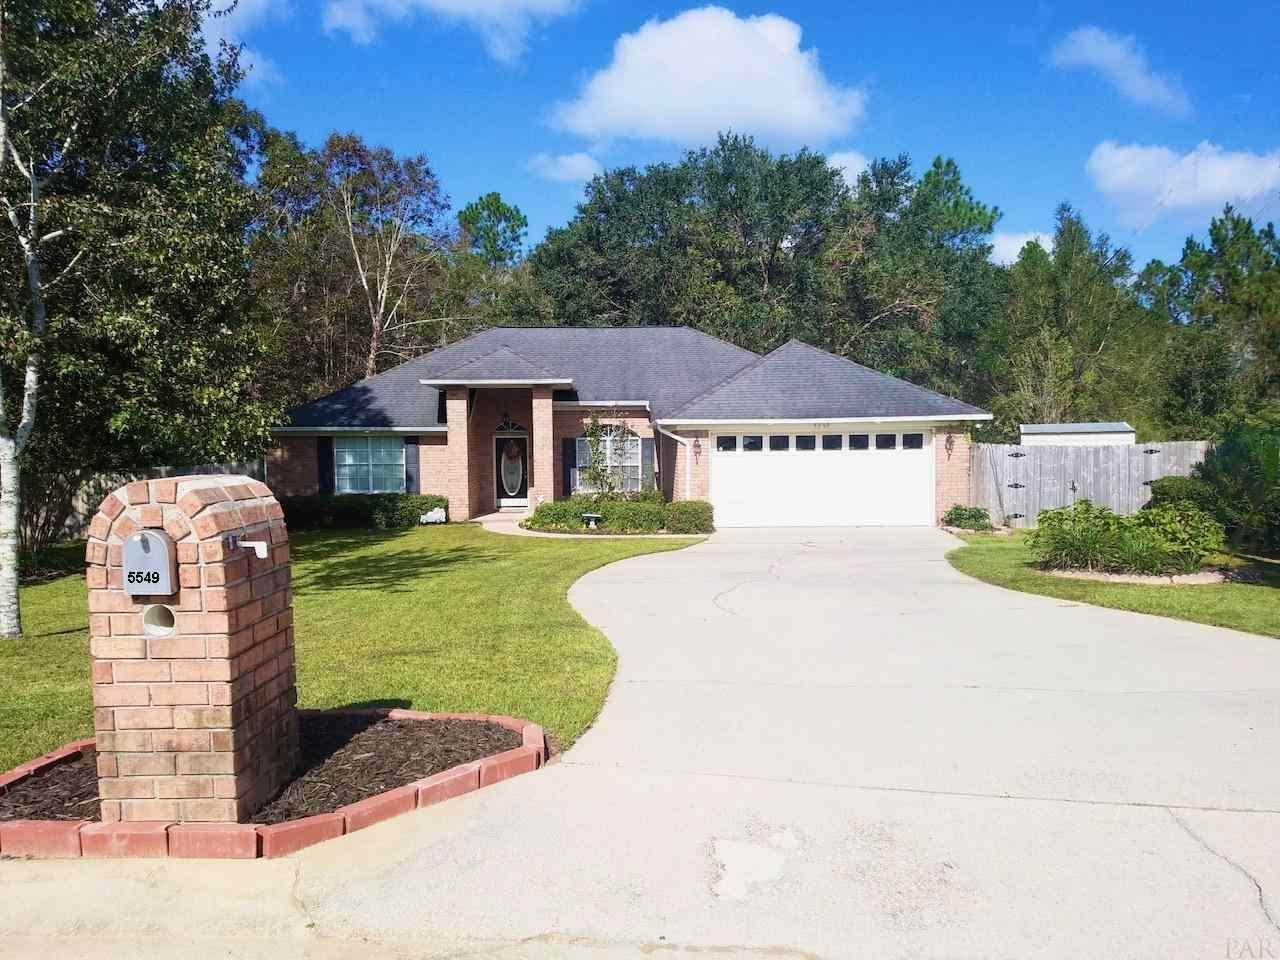 5549 Whispering Woods Dr - Photo 1